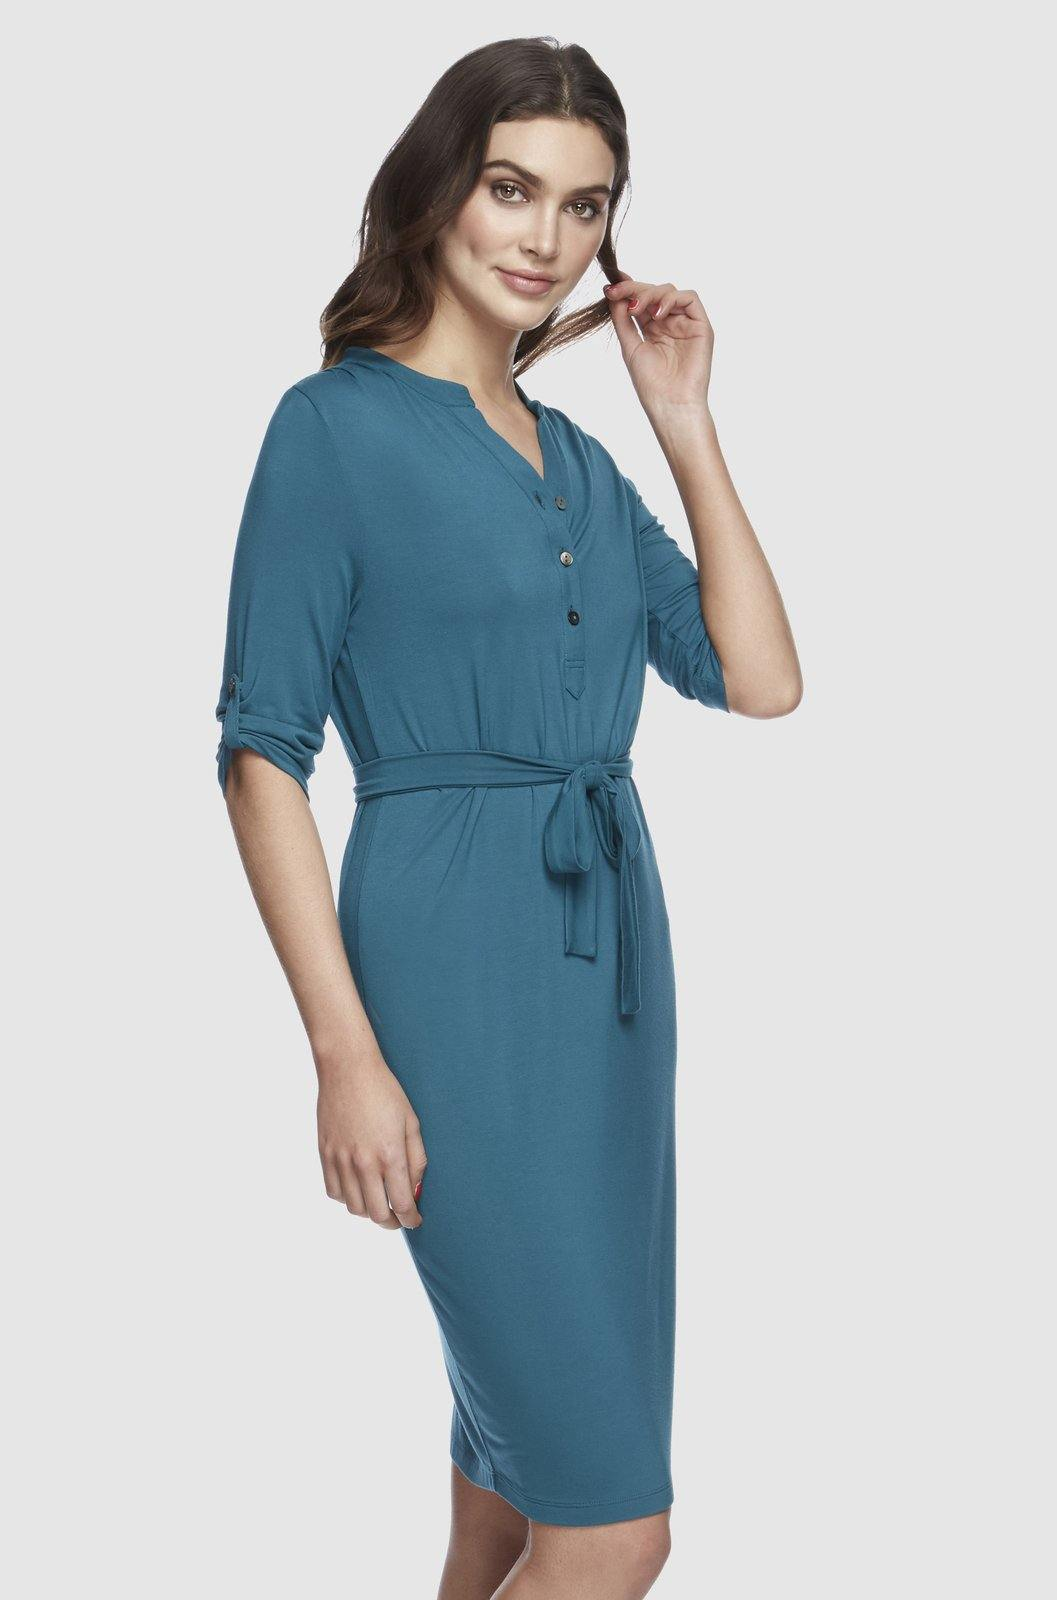 Bamboo Body Tab Sleeve Dress - Spruce - Weekends on 2nd Ave